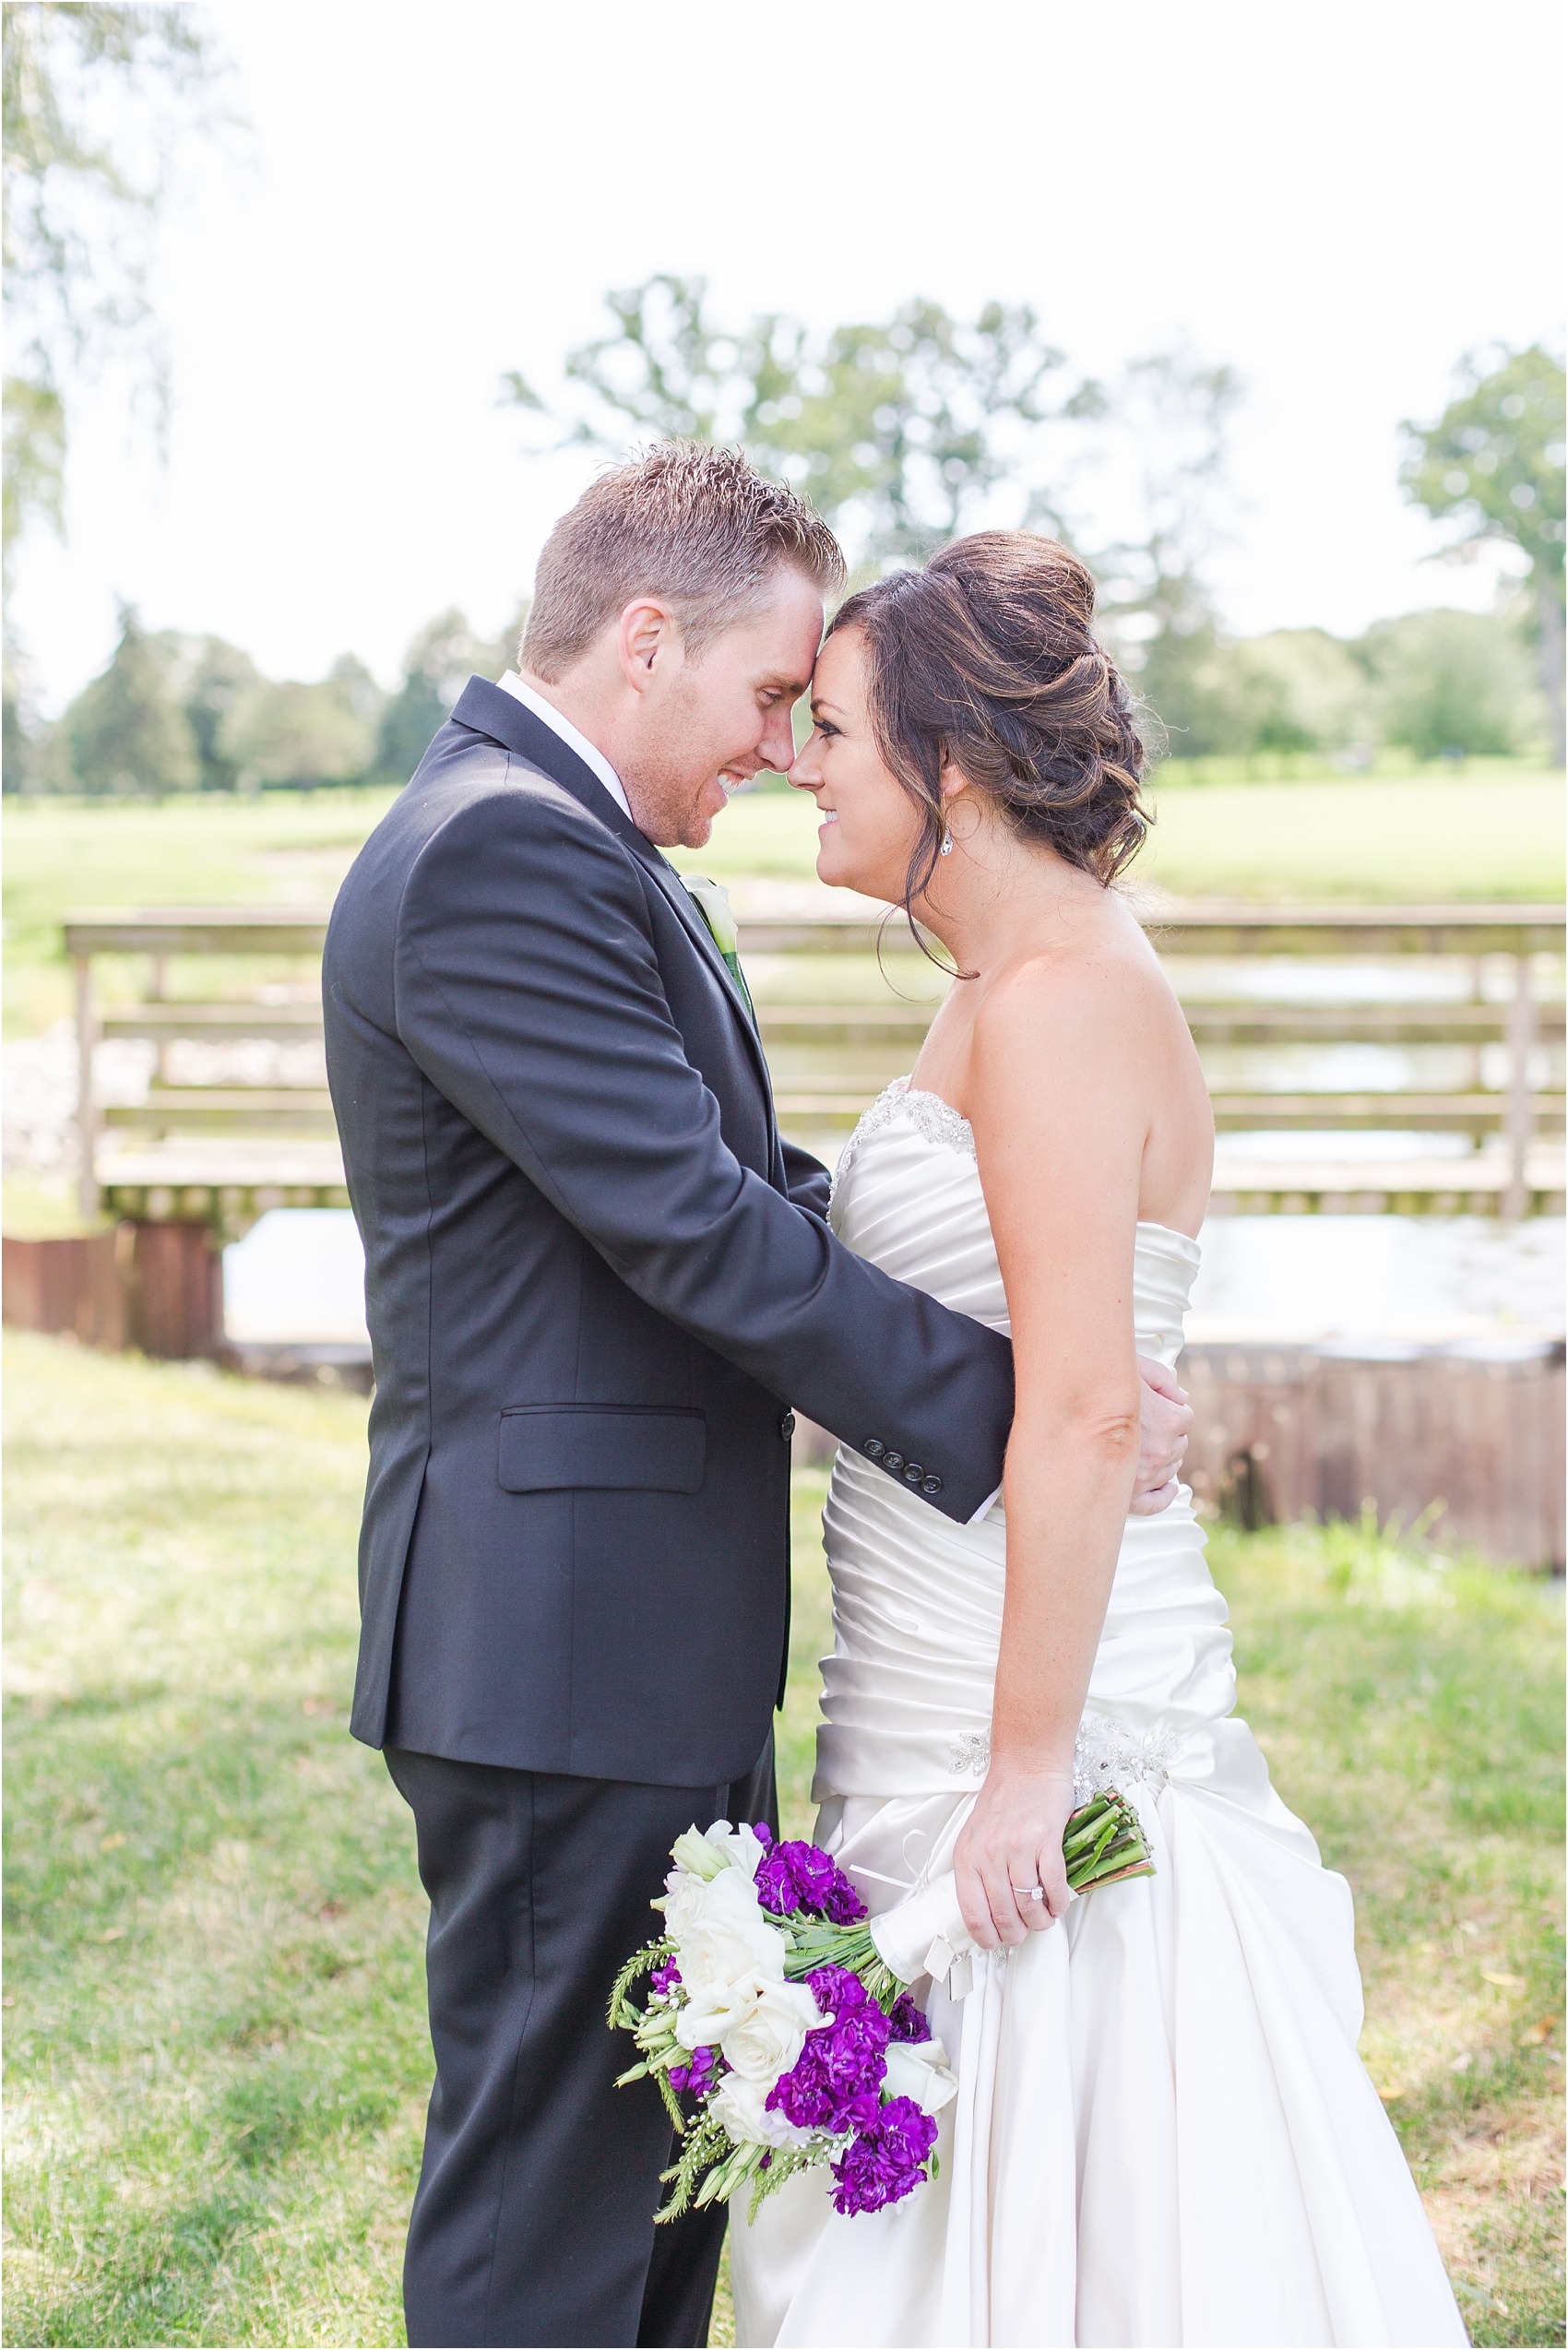 classic-wedding-photos-at-great-oaks-country-club-in-rochester-hills-mi-by-courtney-carolyn-photography_0042.jpg